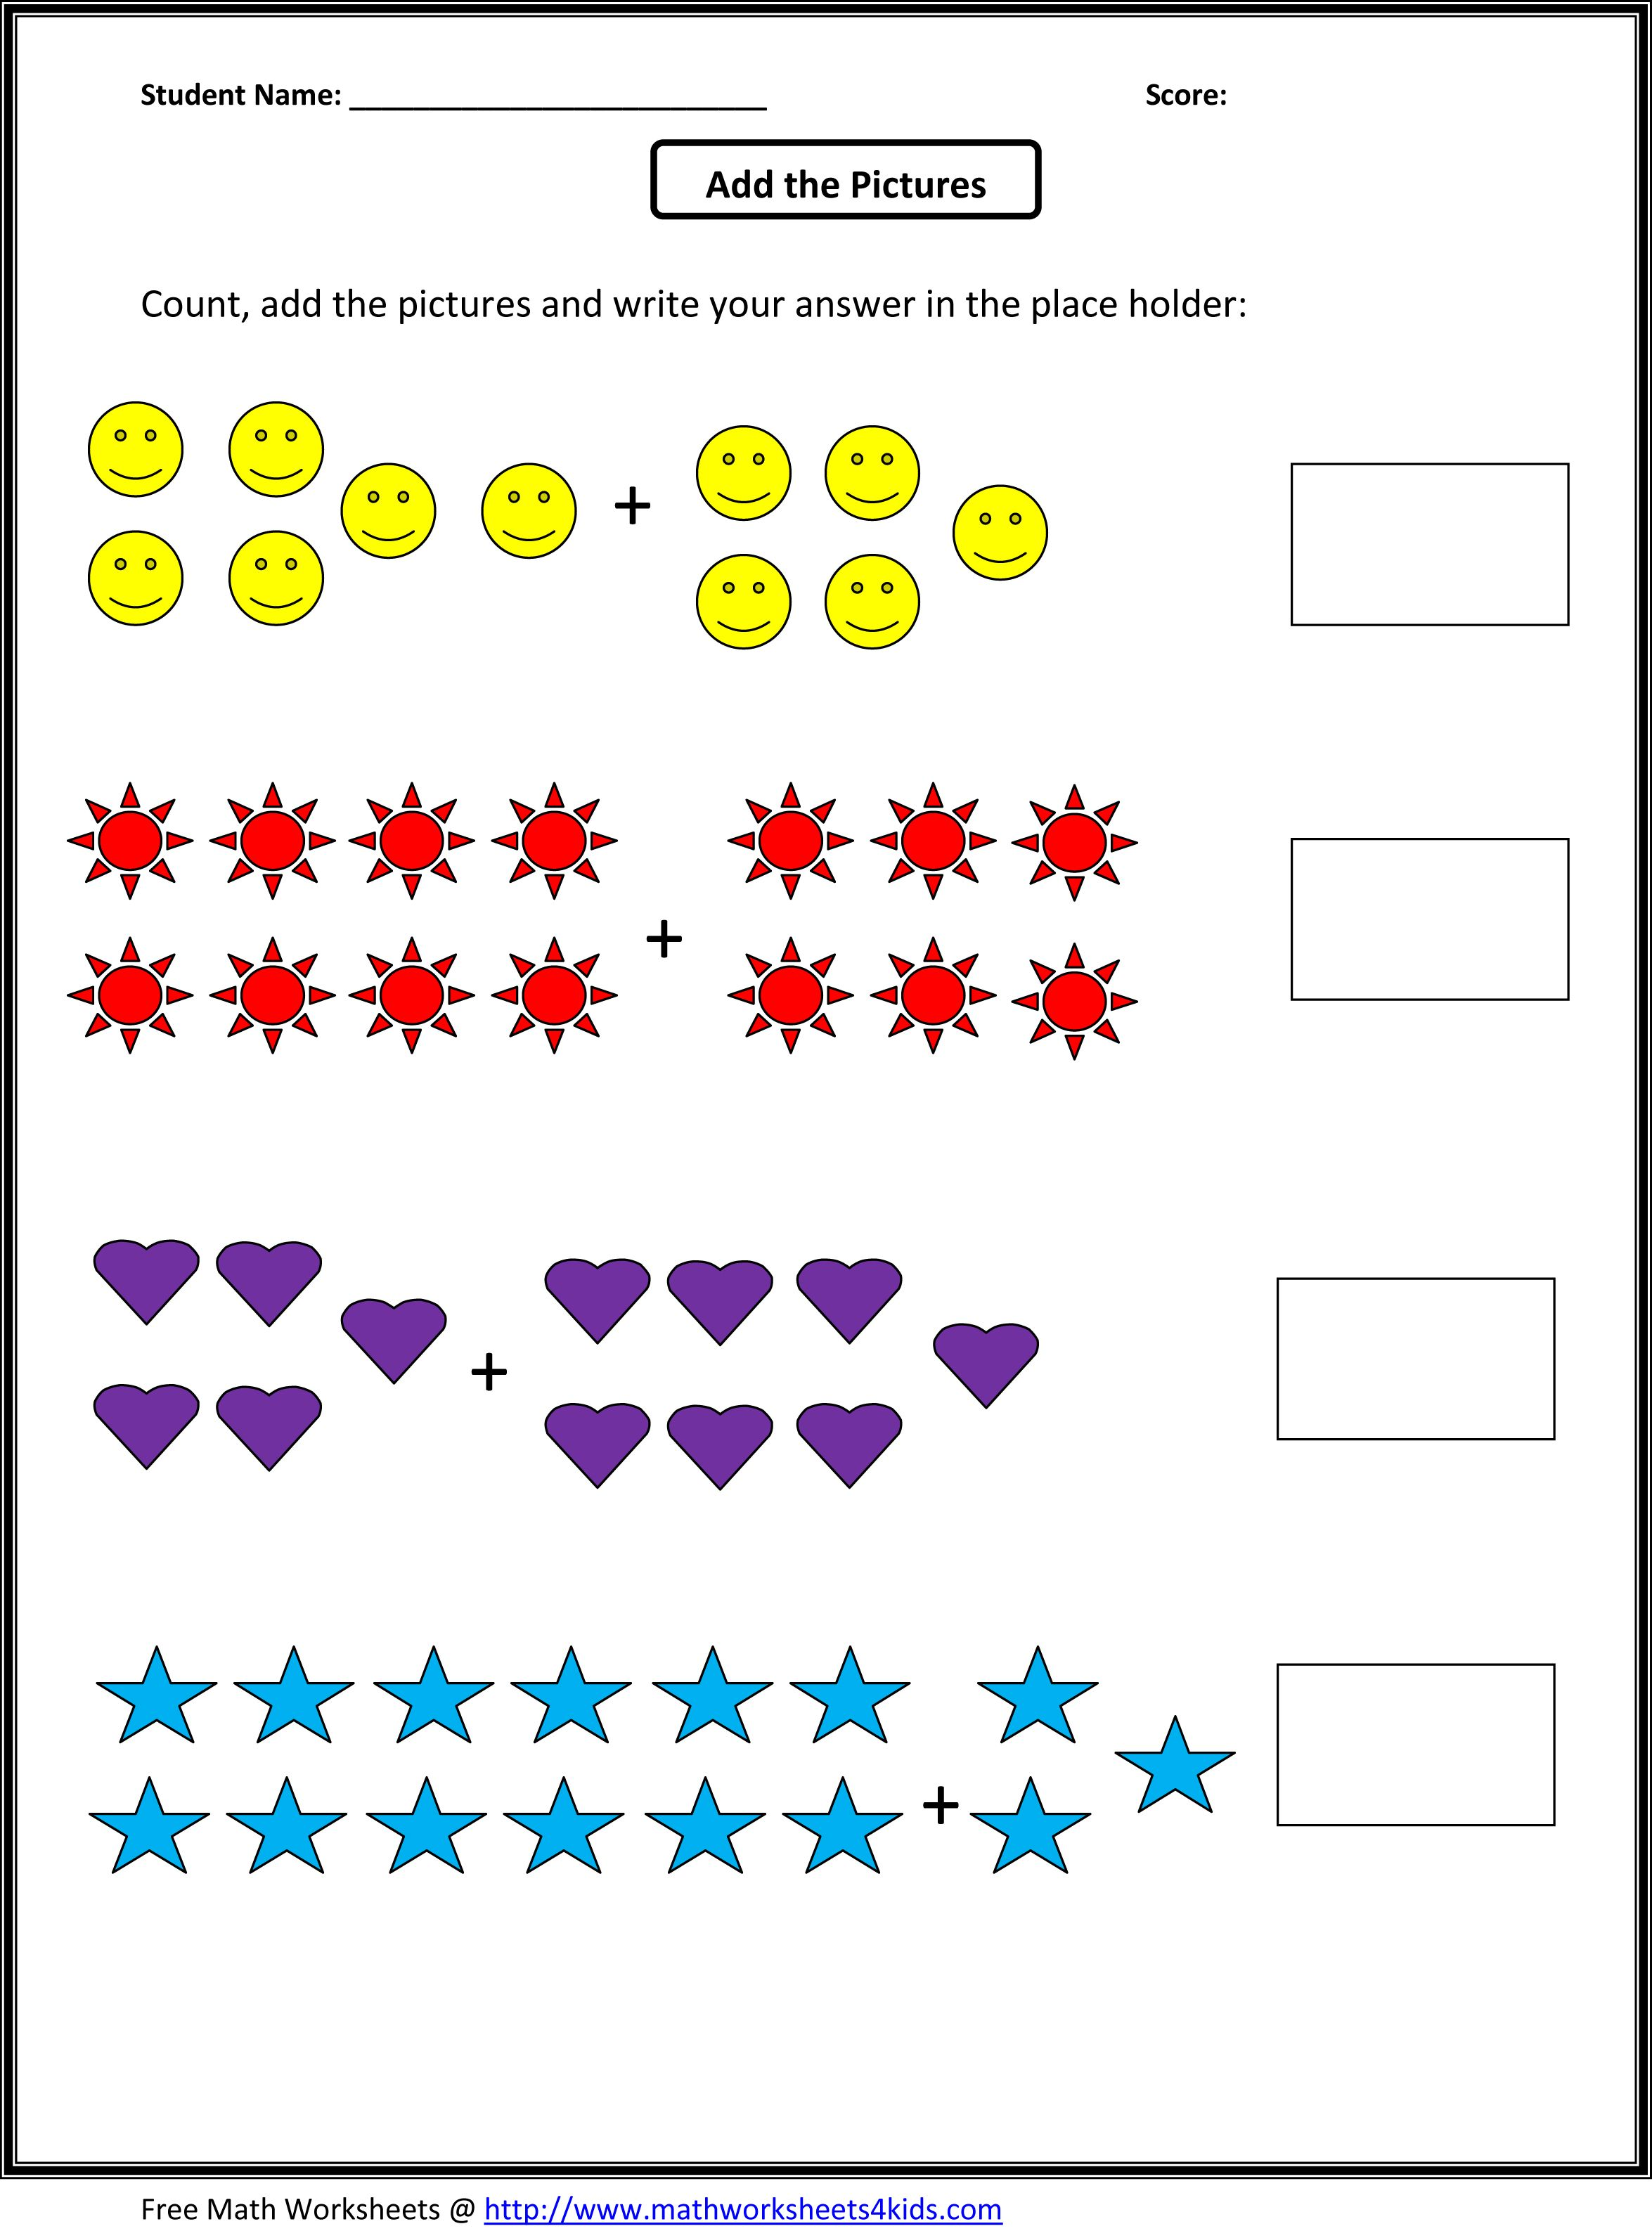 Aldiablosus  Marvellous Worksheet For Math Grade   Coffemix With Remarkable  Images About School On Pinterest  Mental Maths Worksheets  With Comely Reading Comprehension Worksheets Uk Also Ratio And Proportion Worksheets Th Grade In Addition Rd Grade Multiplication Worksheets Free Printable And Class  English Worksheet As Well As Math Worksheets For Grade  Free Additionally Naming Part Of A Sentence Worksheets From Coffemixcom With Aldiablosus  Remarkable Worksheet For Math Grade   Coffemix With Comely  Images About School On Pinterest  Mental Maths Worksheets  And Marvellous Reading Comprehension Worksheets Uk Also Ratio And Proportion Worksheets Th Grade In Addition Rd Grade Multiplication Worksheets Free Printable From Coffemixcom